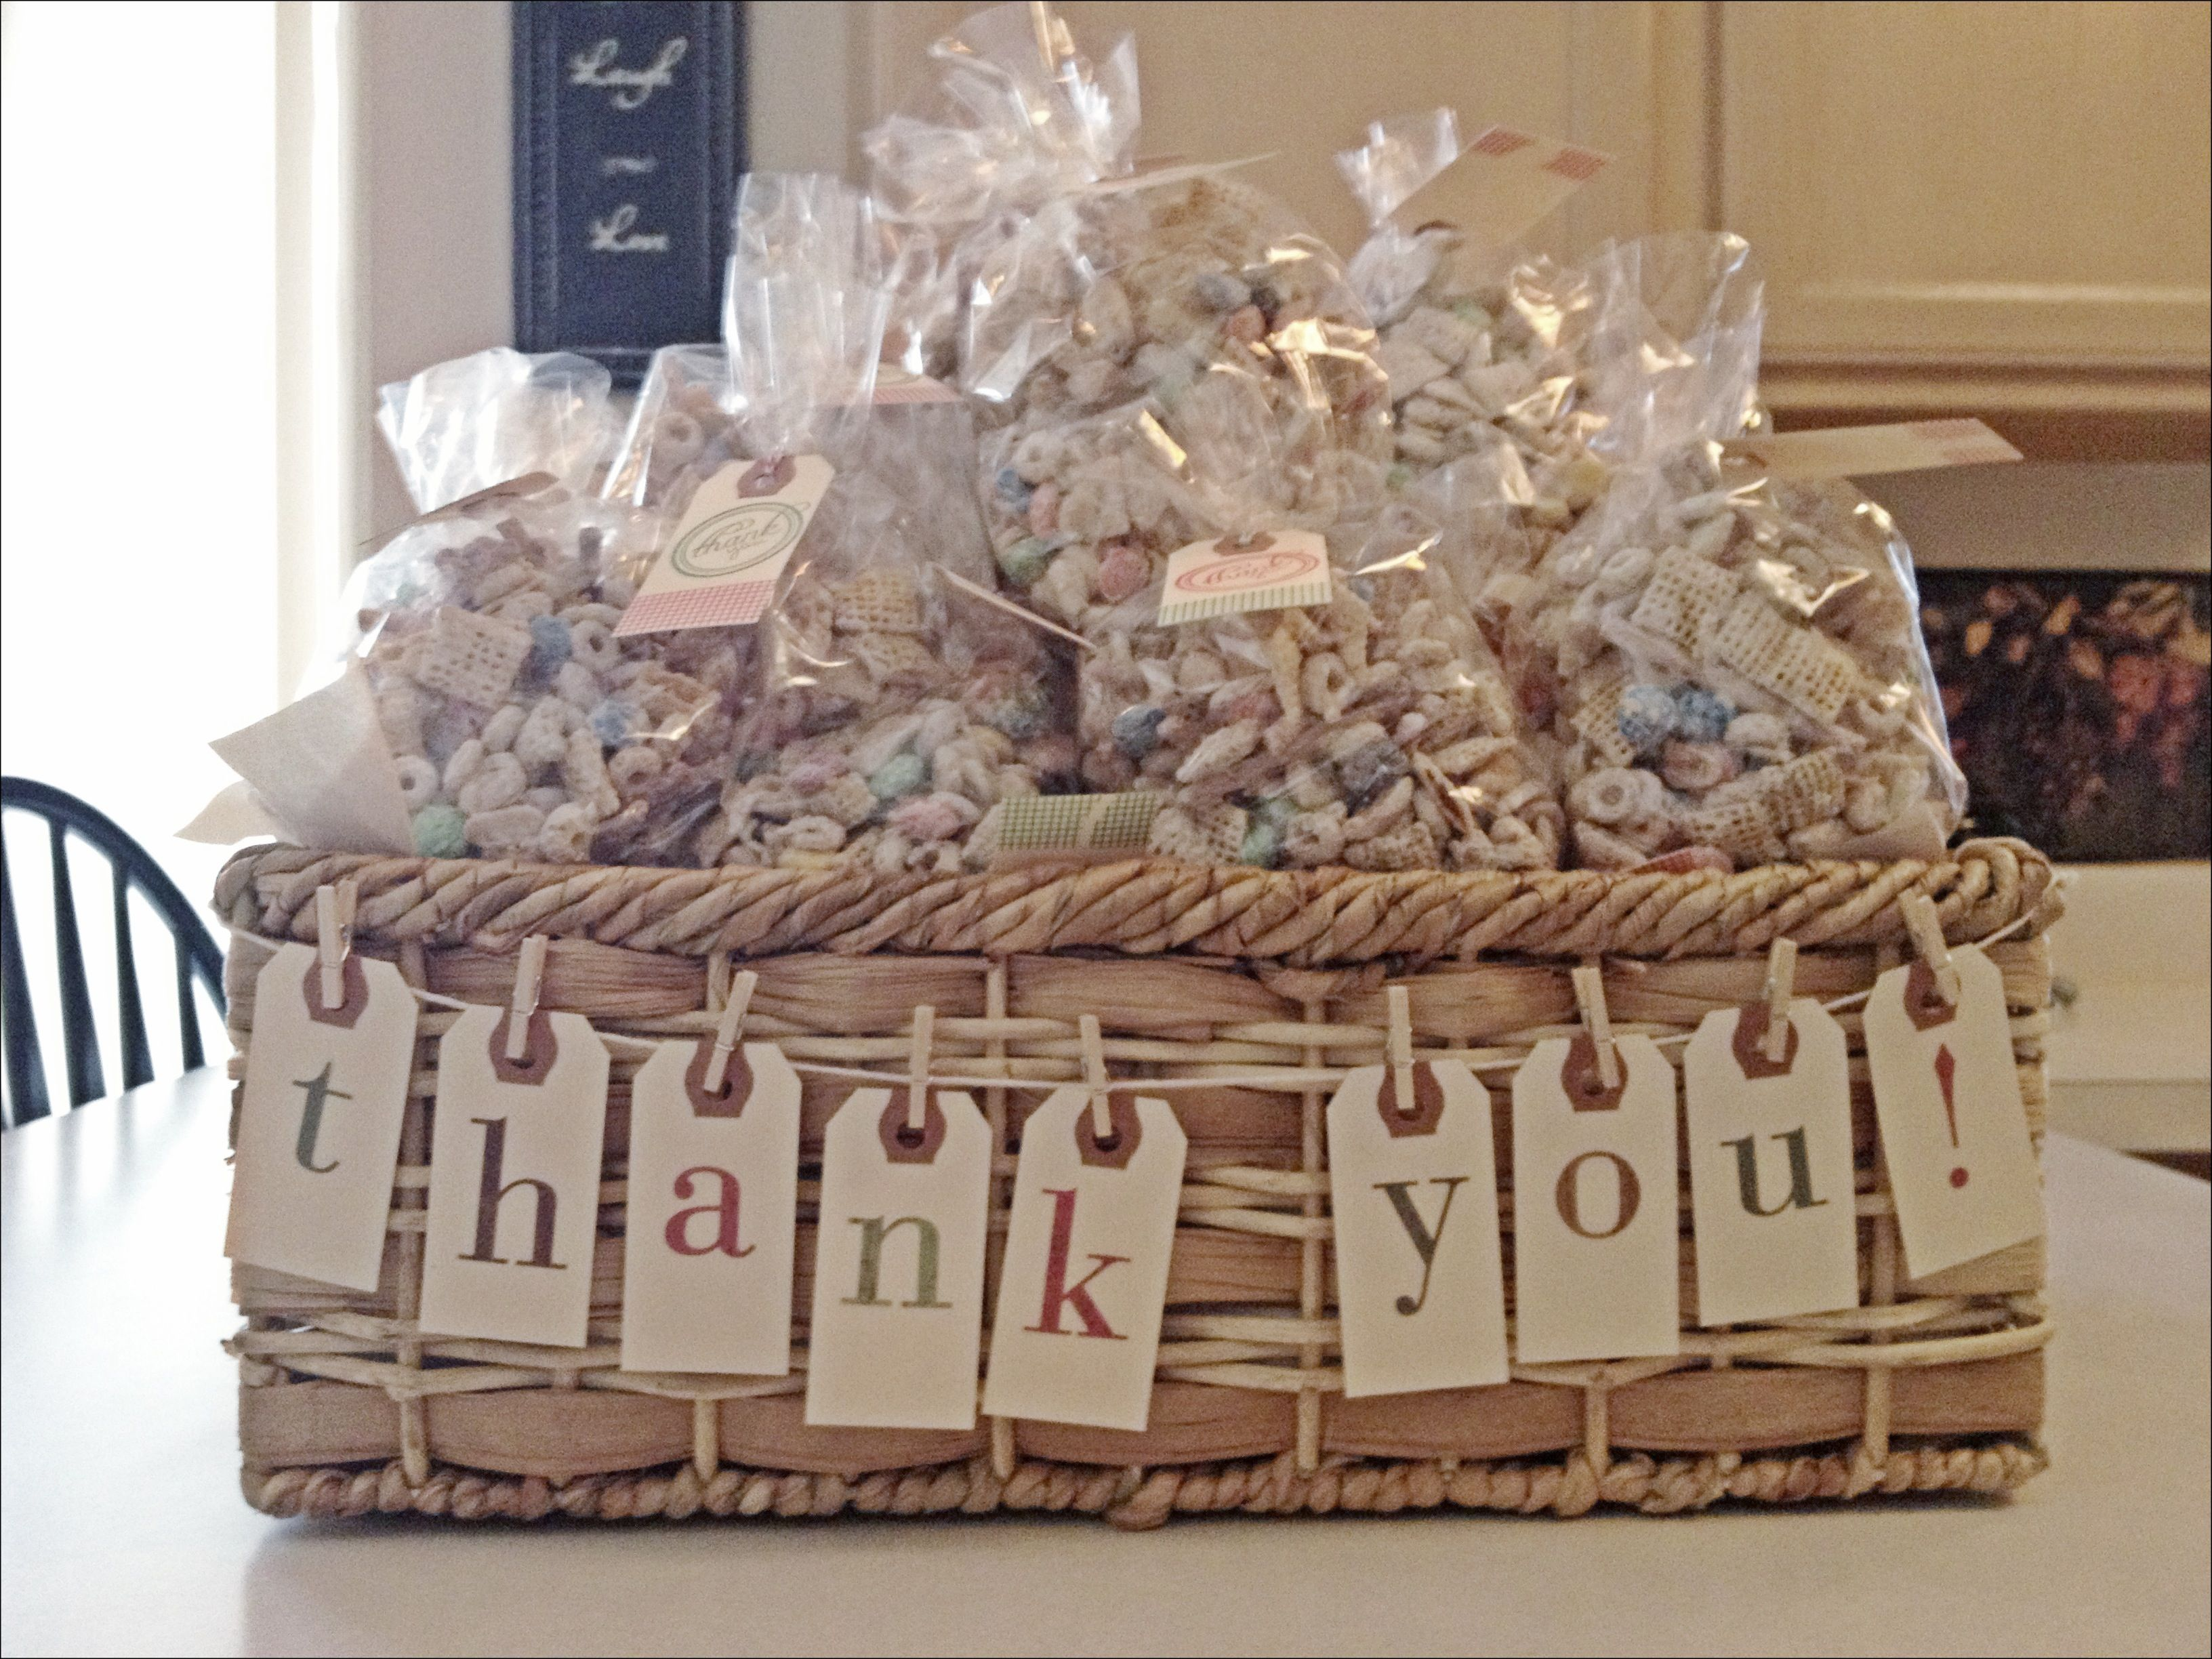 House party gifts wedding